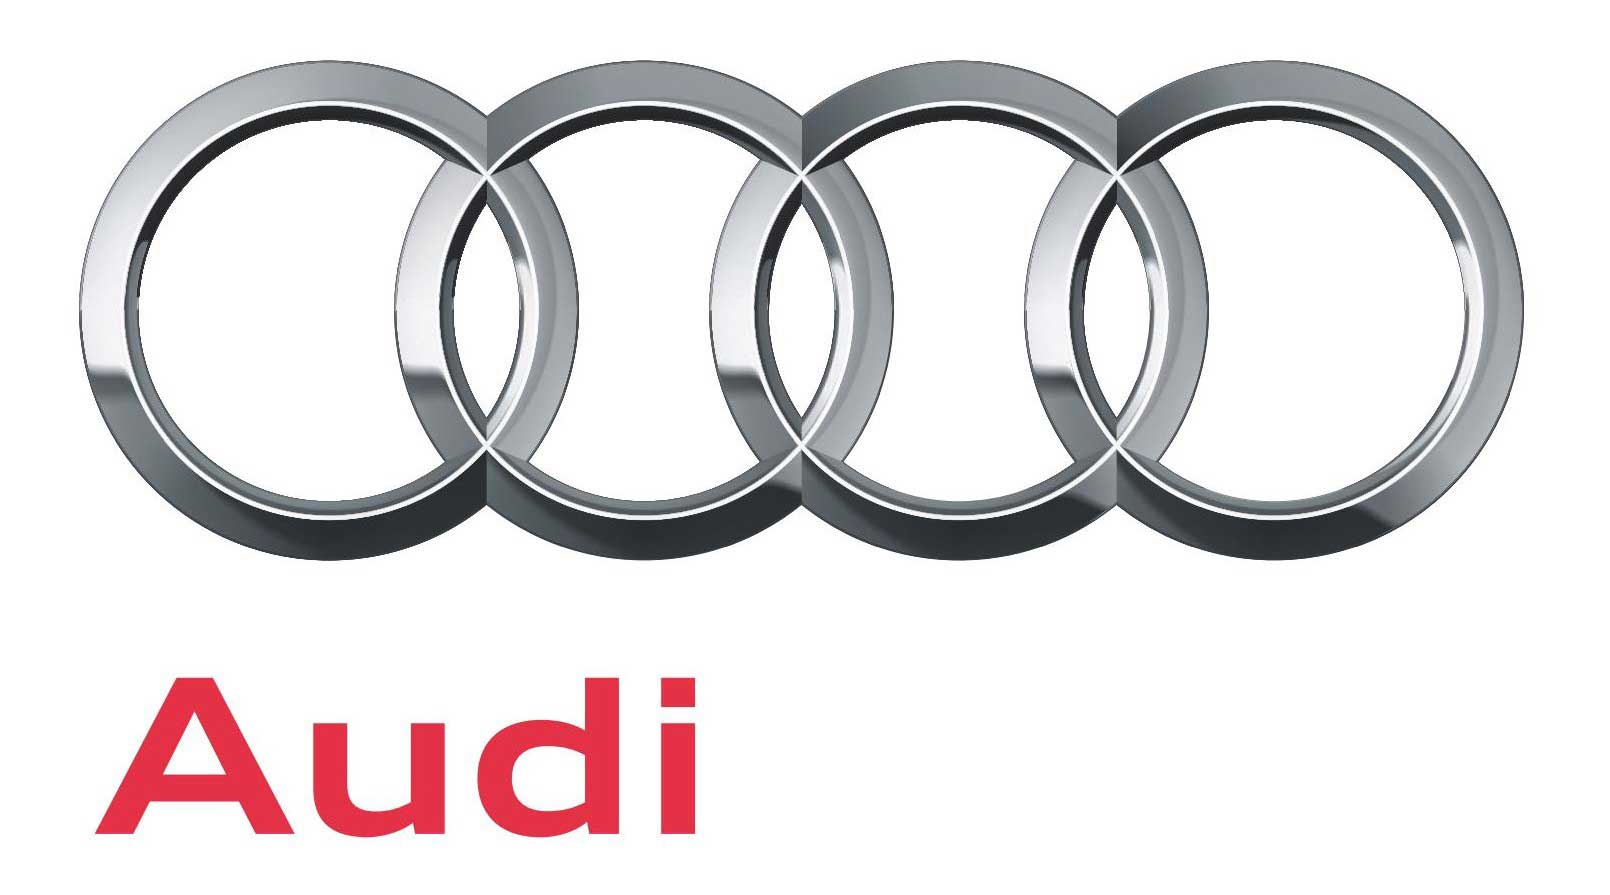 Audi Volkswagen diesel engine group